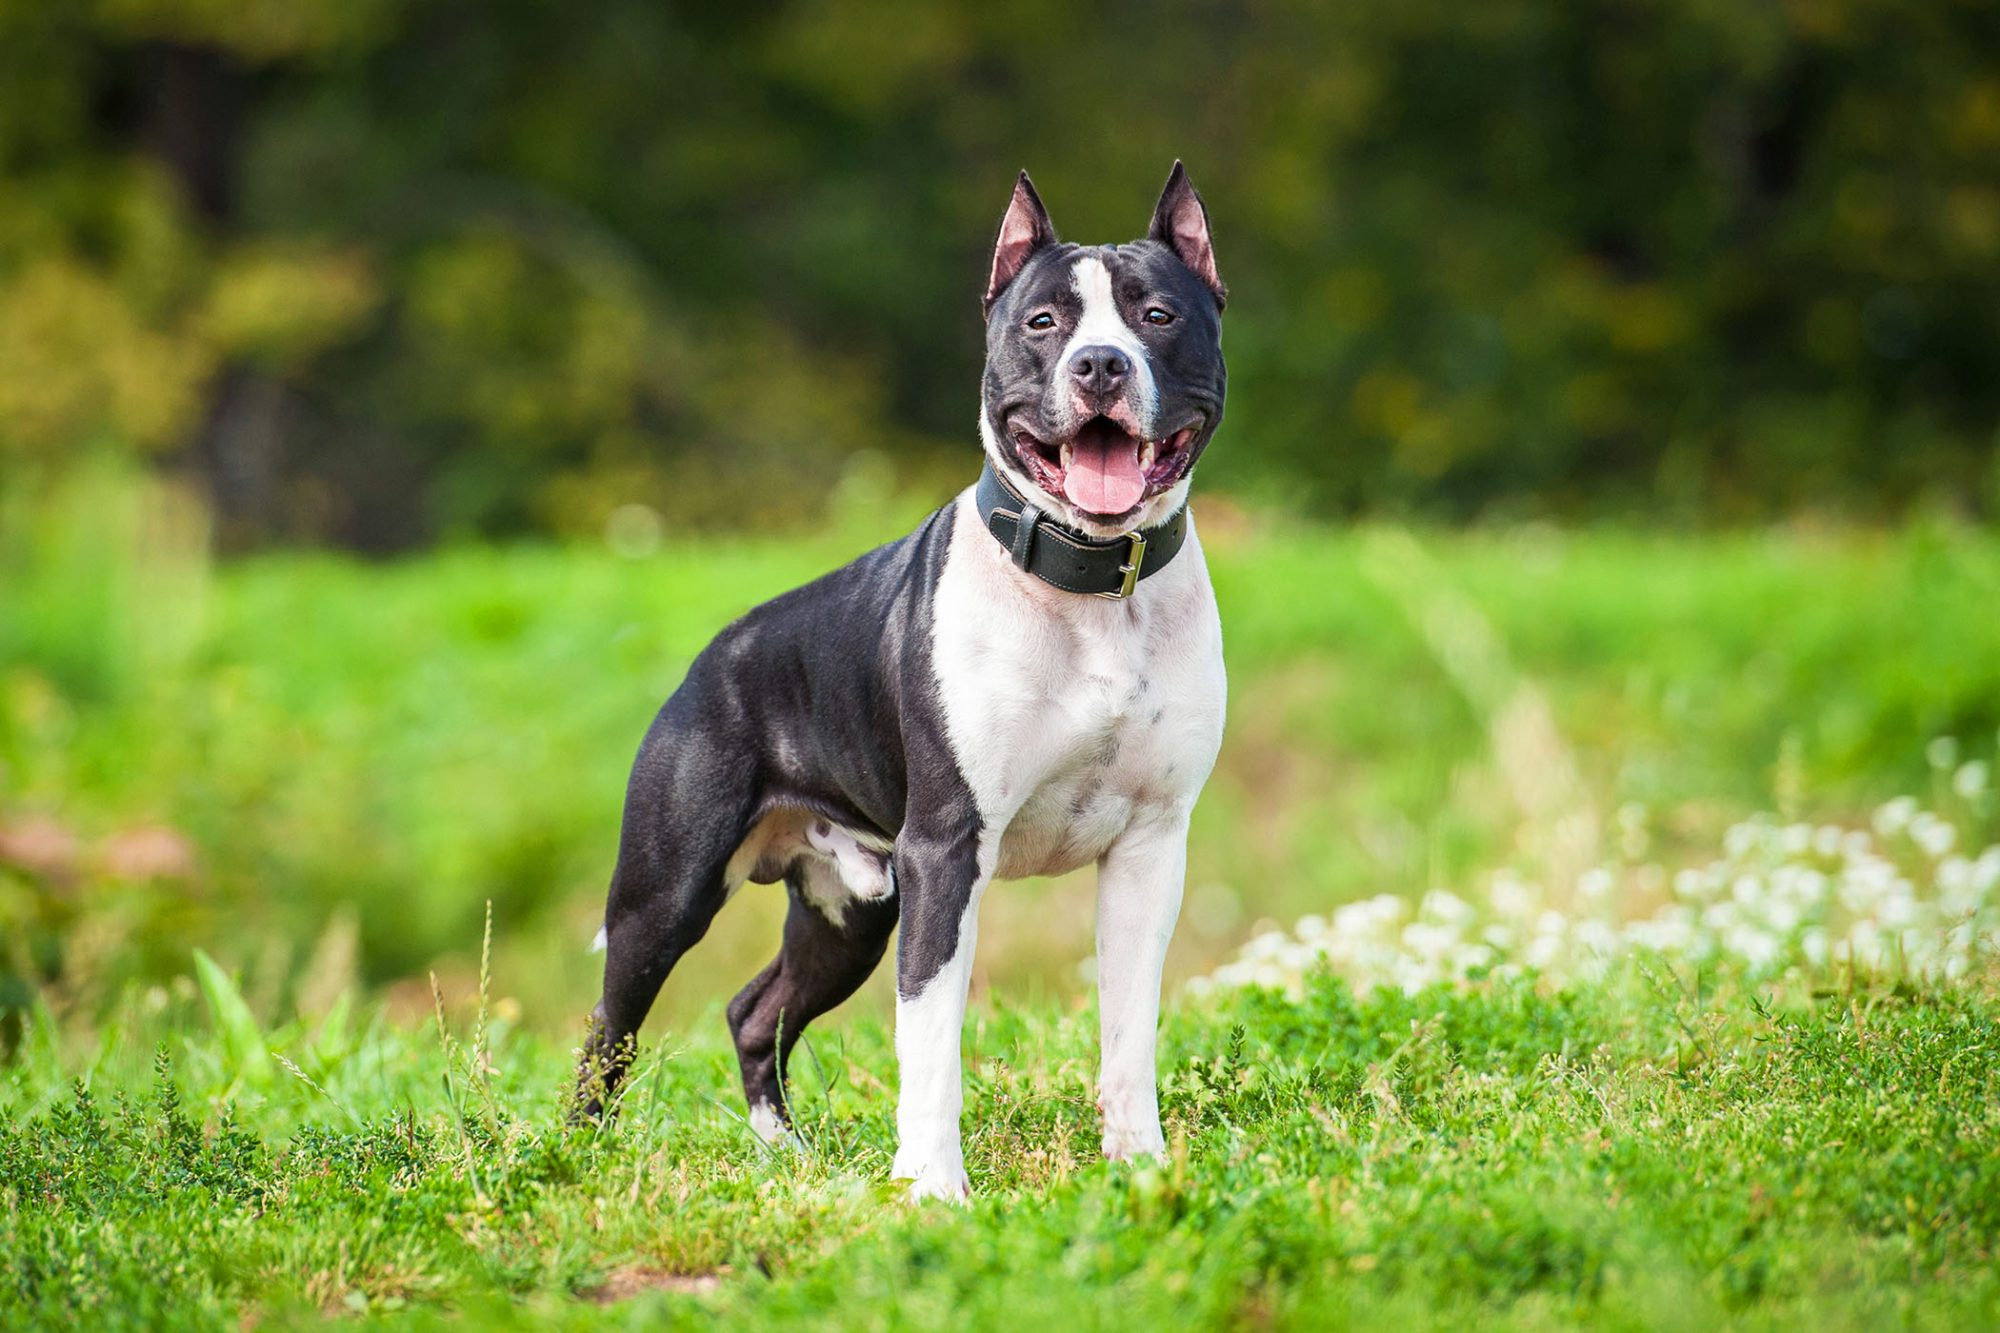 Staffordshire Terrier guard dog